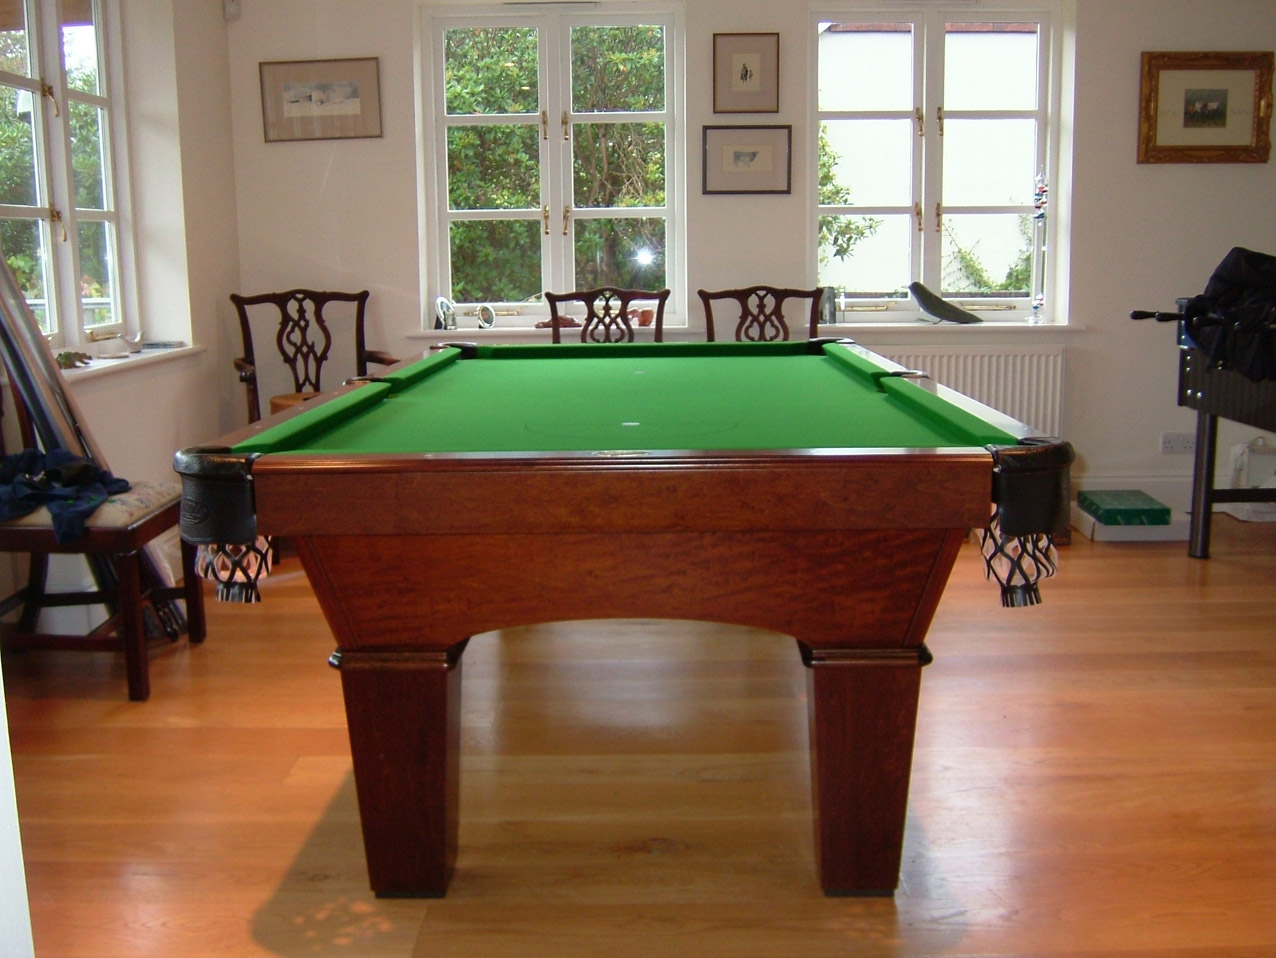 Olhausen Reno Pool Table In Traditional Finish American Pool Table - Reno pool table